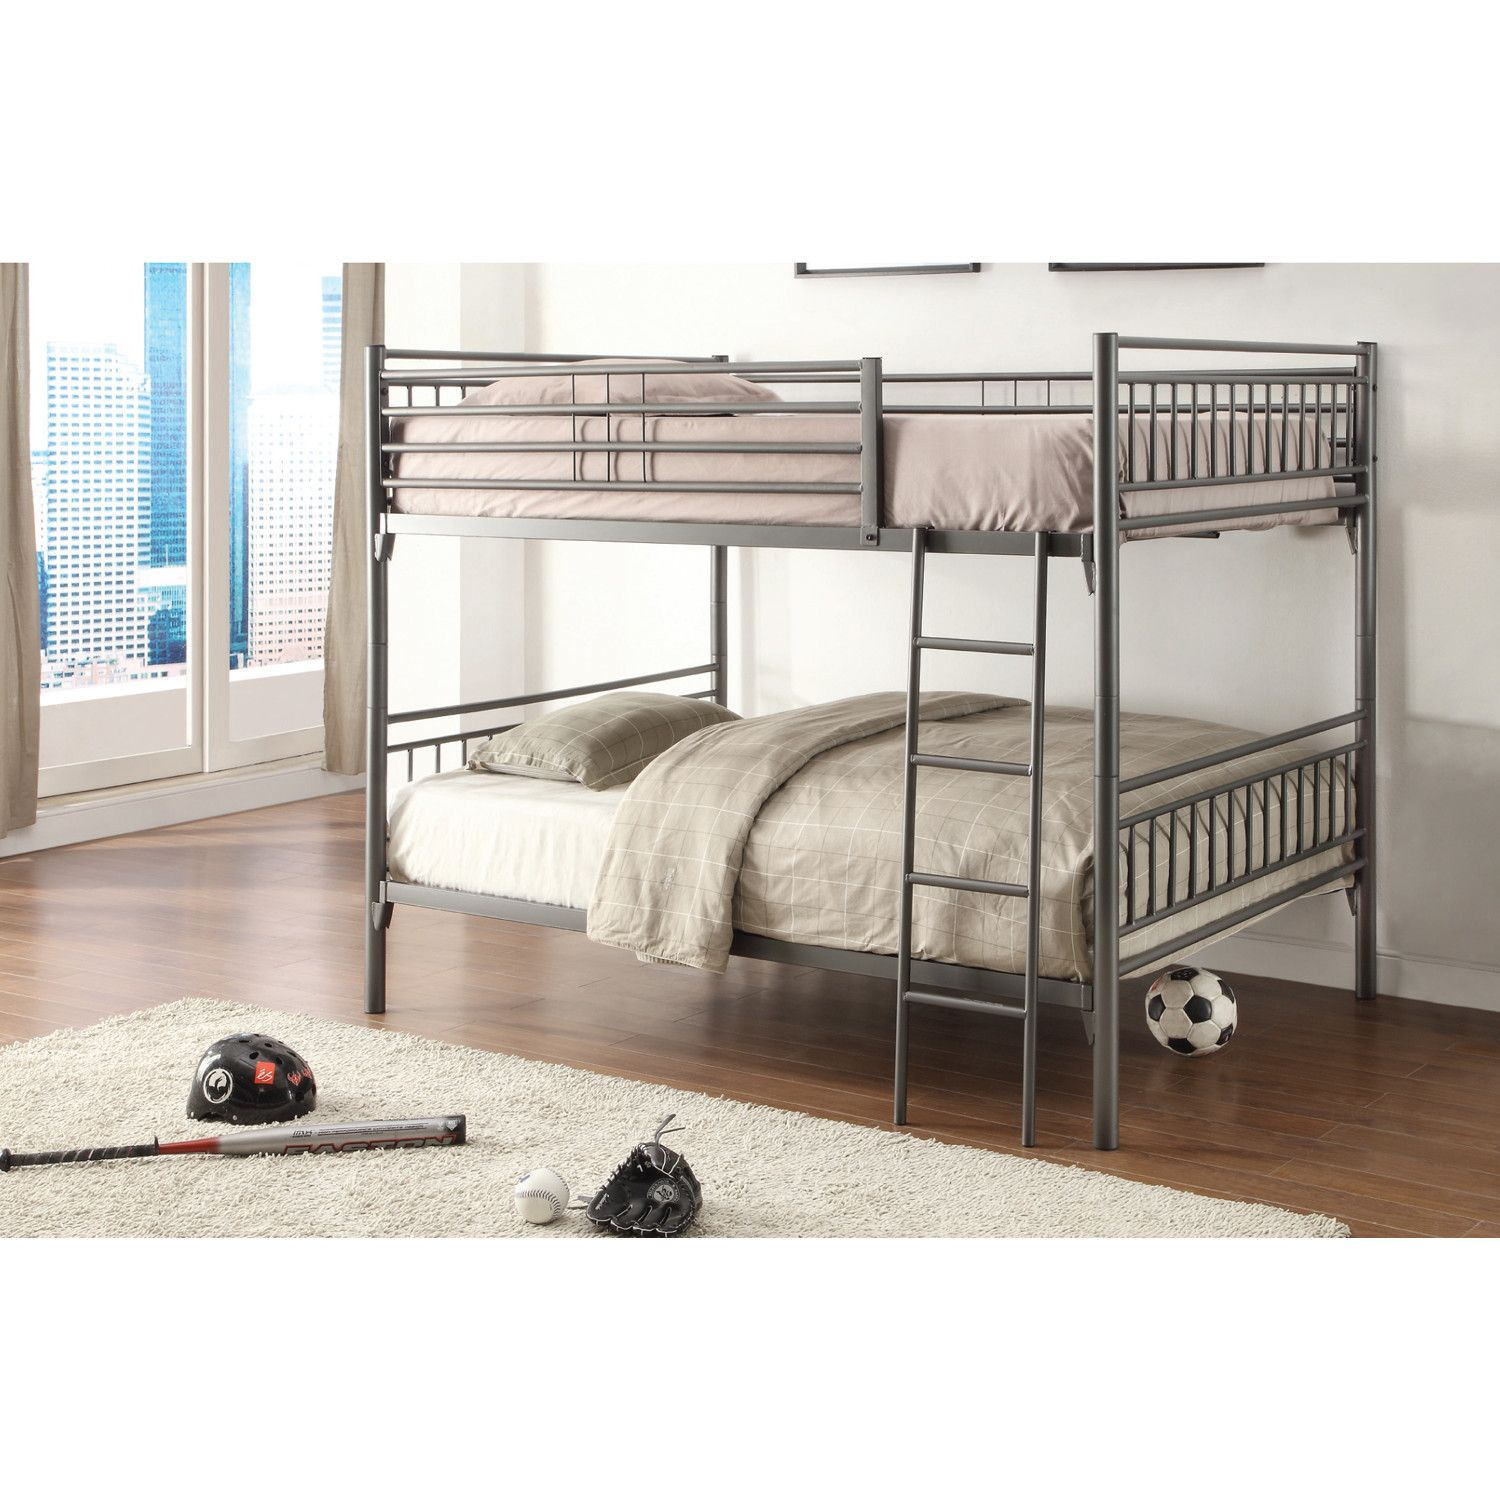 Children's loft bed ideas  Youull love the Full Over Full Bunk Bed at Wayfair  Great Deals on